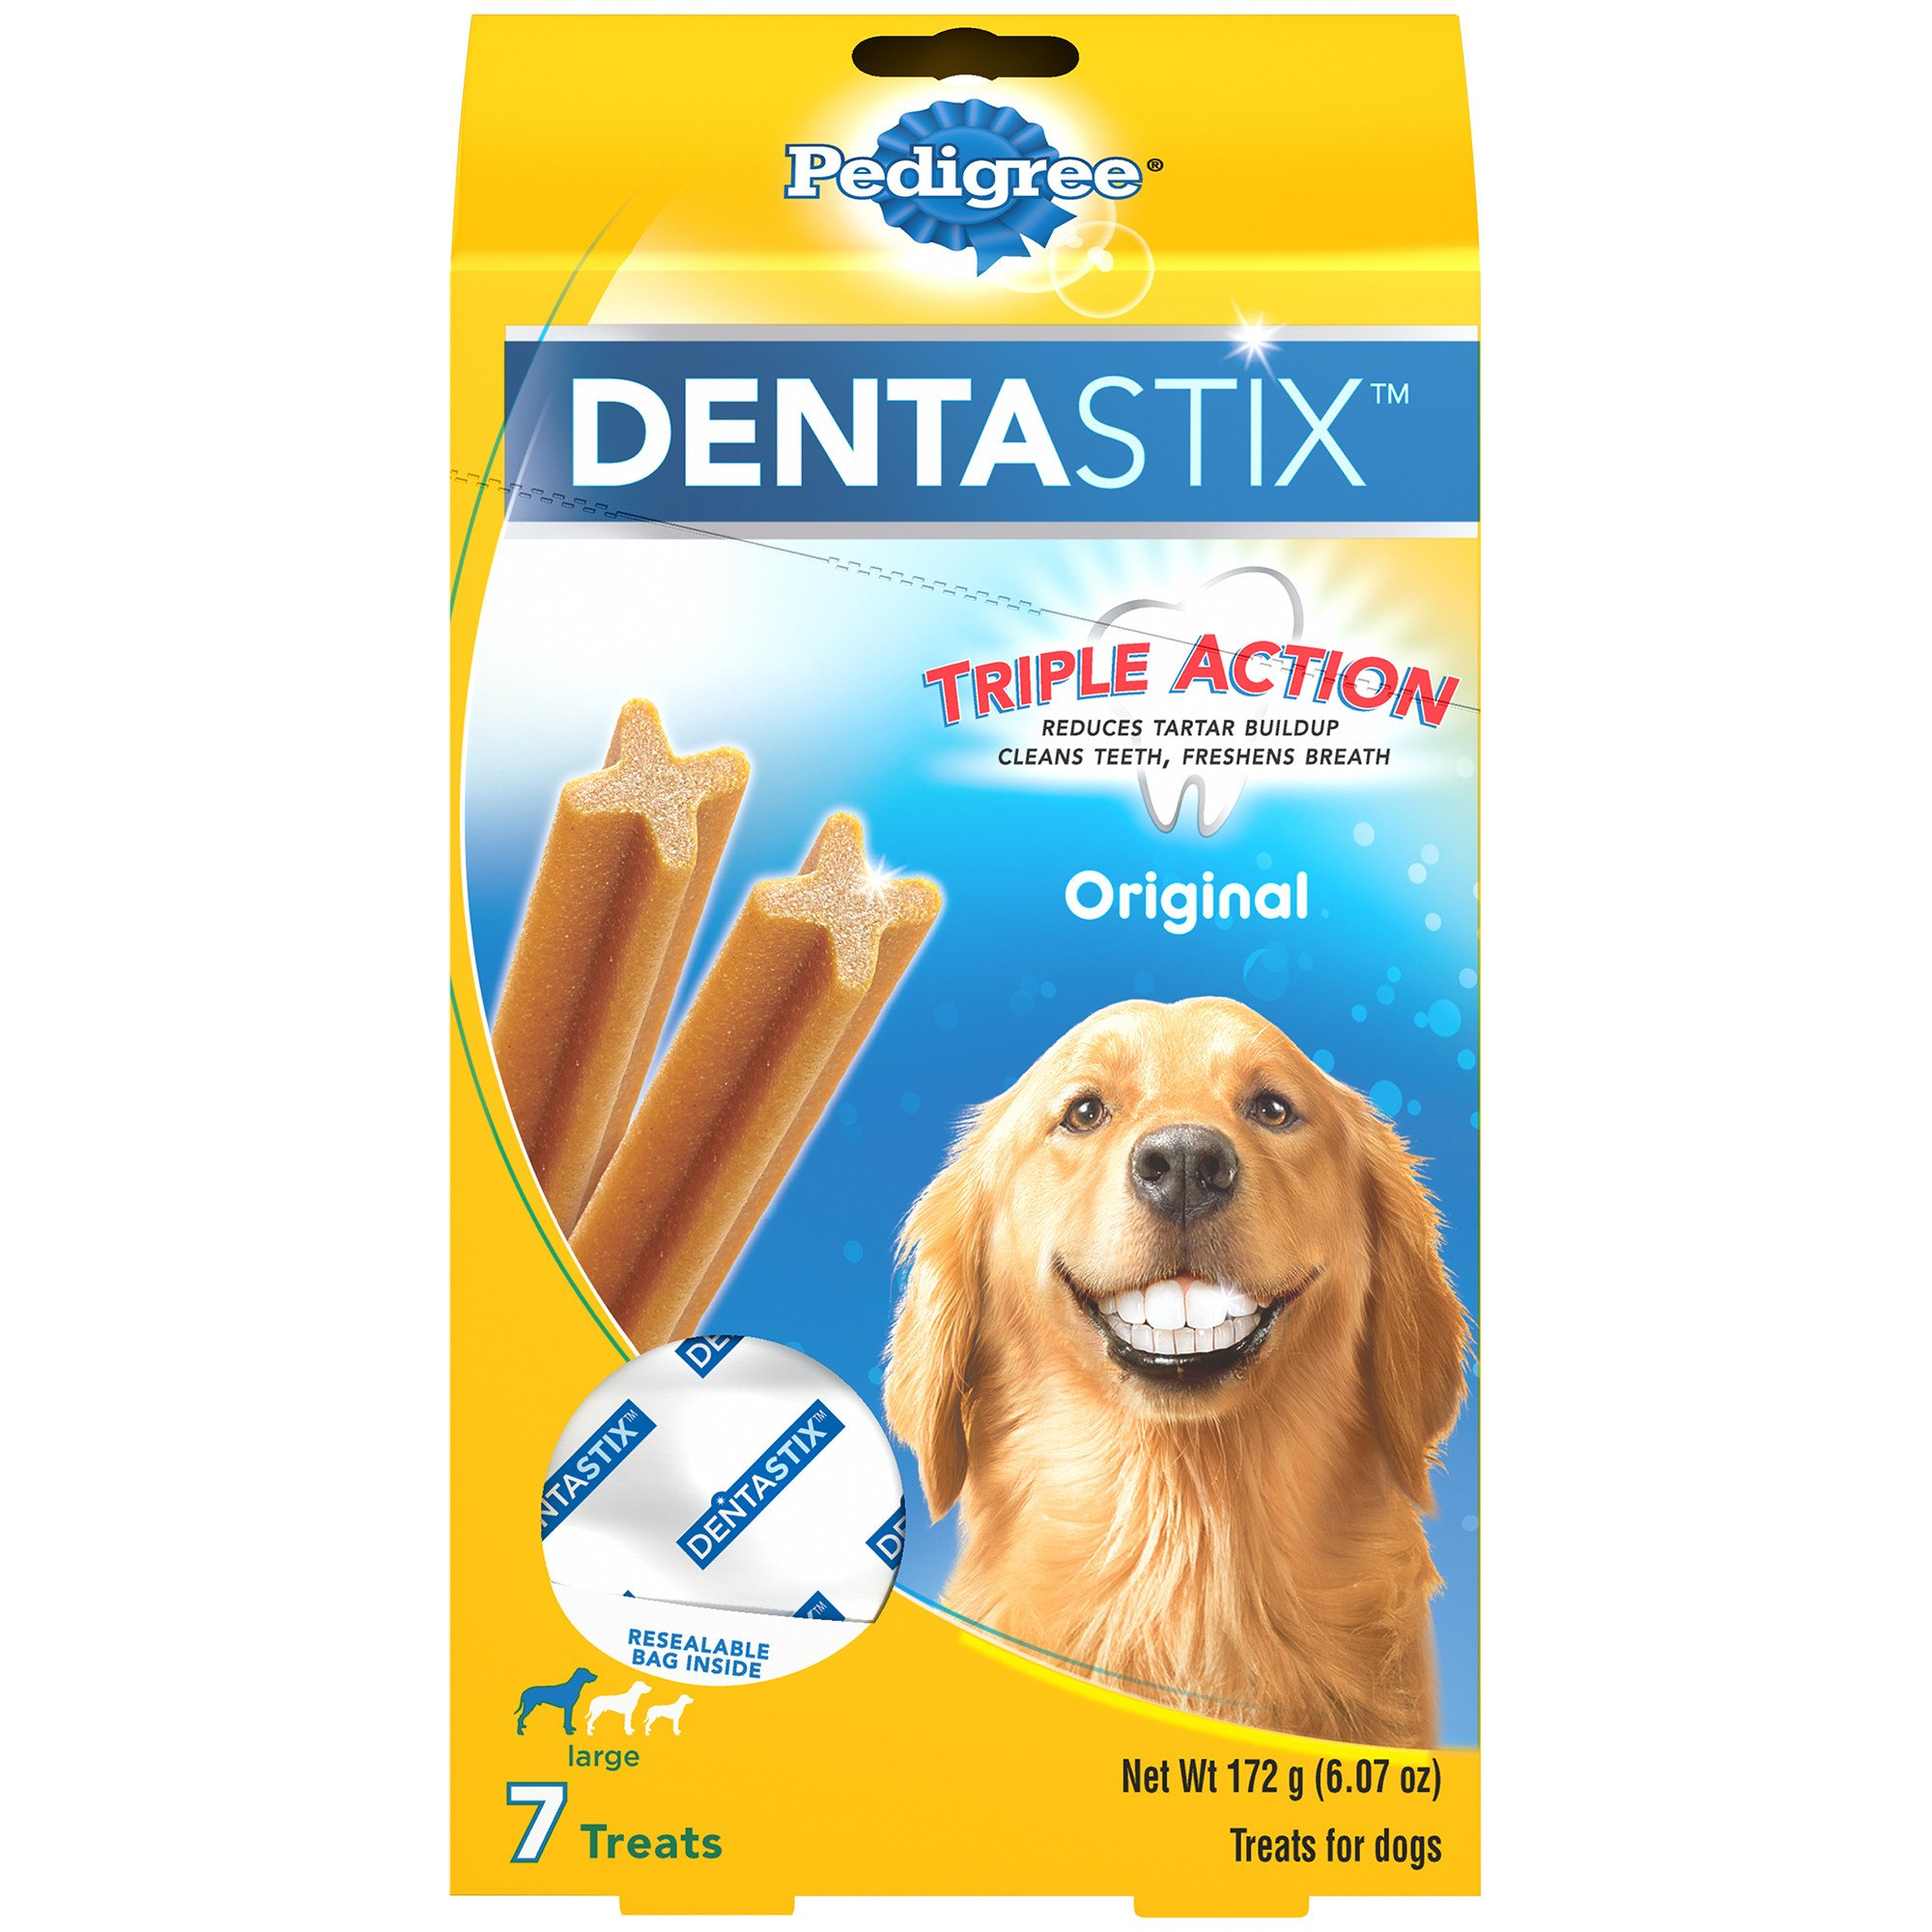 Pedigree Dentastix Large Dog Treats Petco